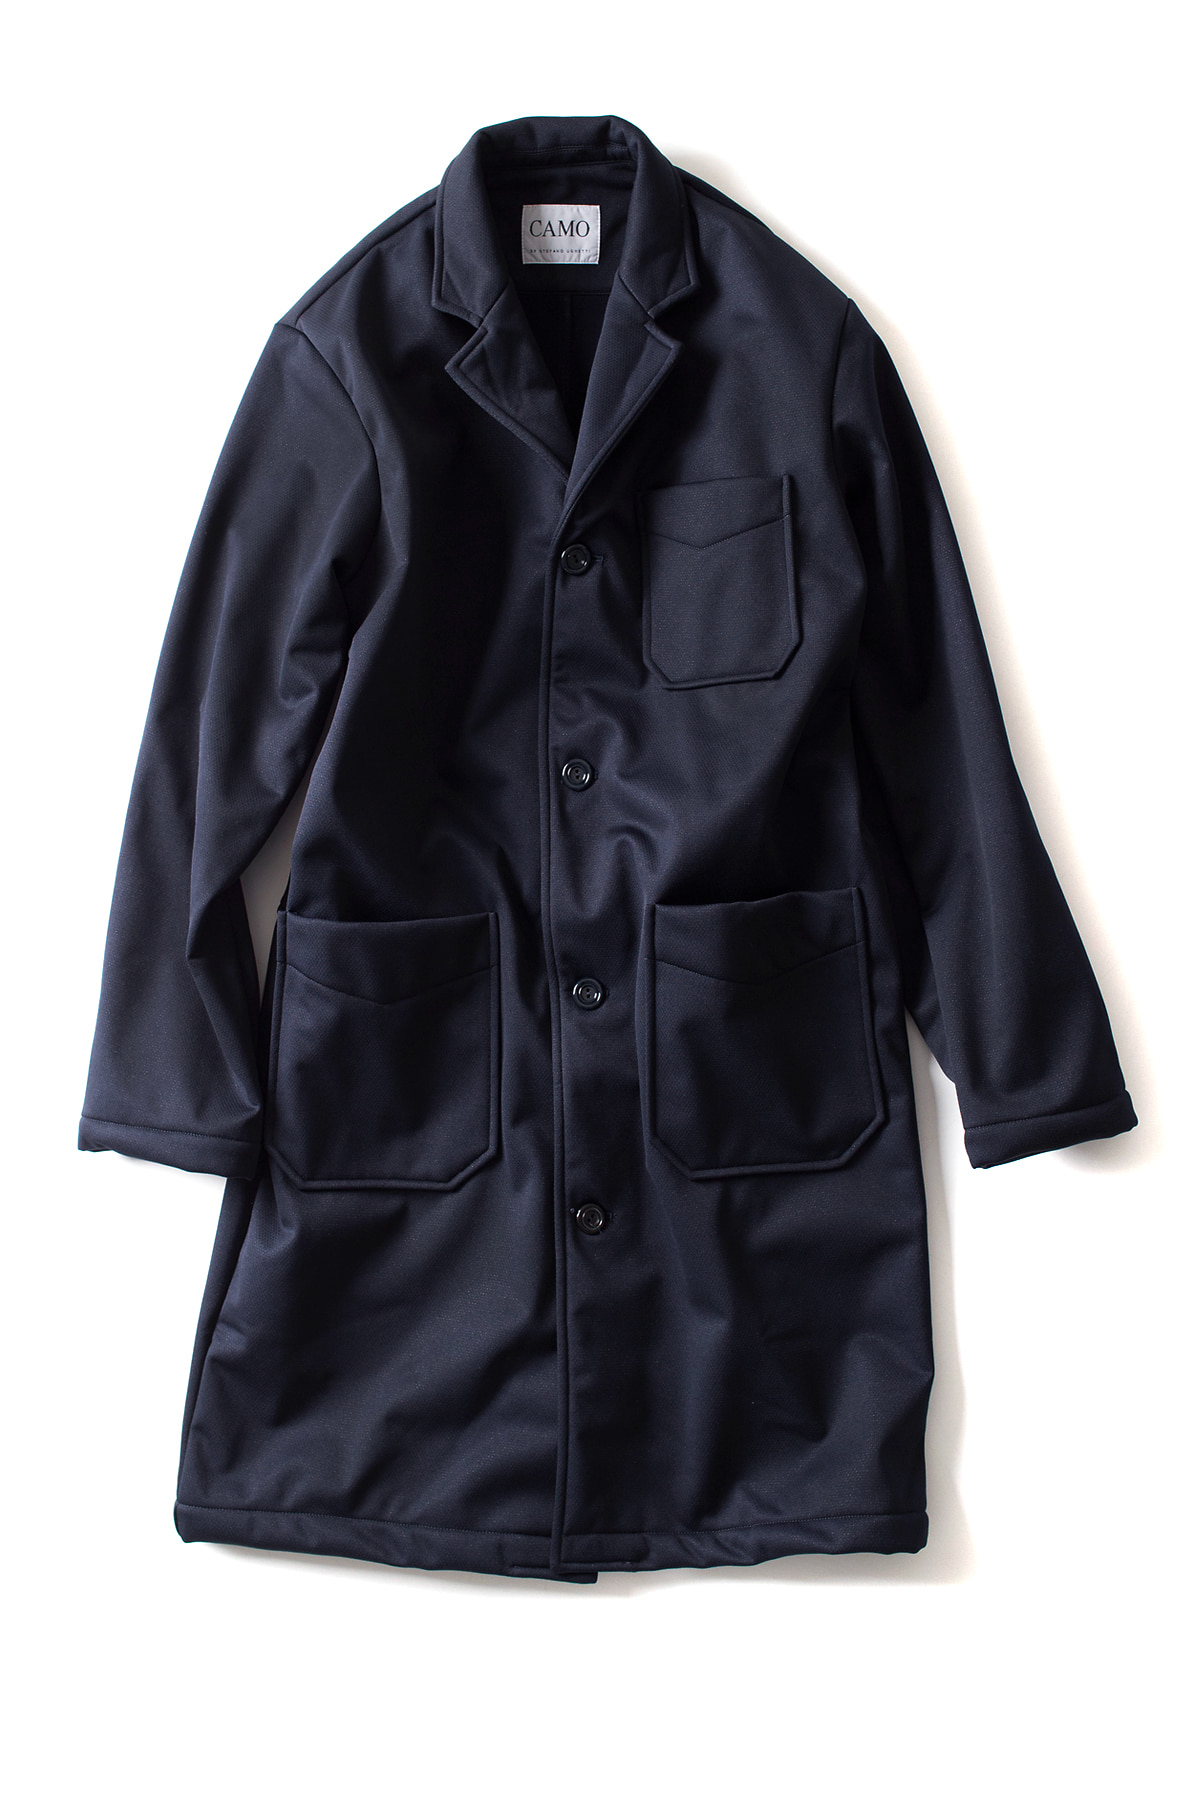 CAMO : RIBOT Wide Coat (Technical Pile navy)